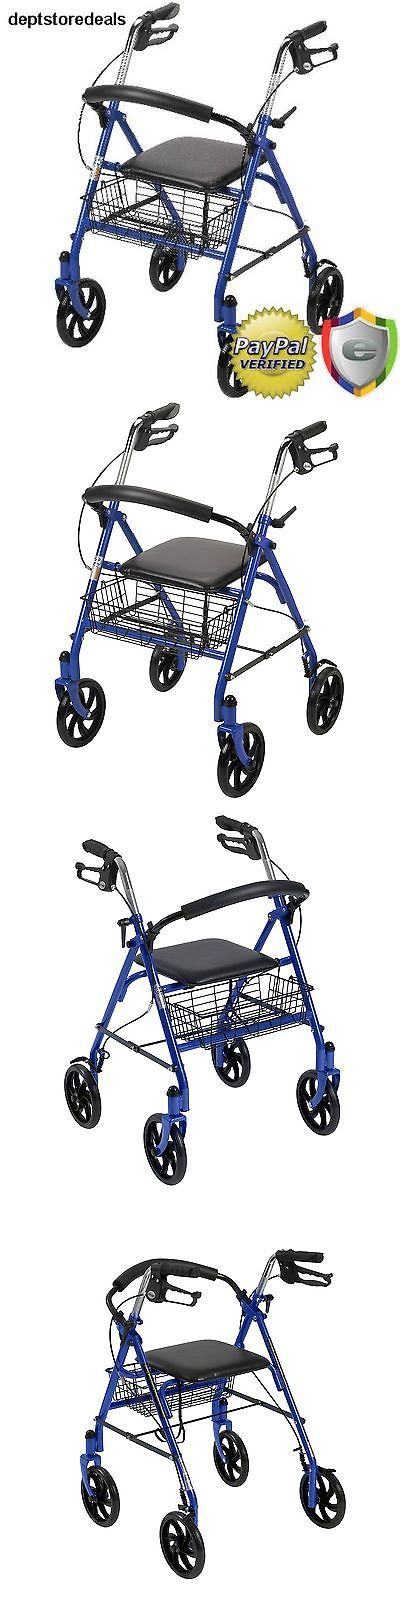 Walkers and Canes: Adult Walker Roller Mobile Stability Medical Rollator Back Support Seat Foldable -> BUY IT NOW ONLY: $80.5 on eBay!